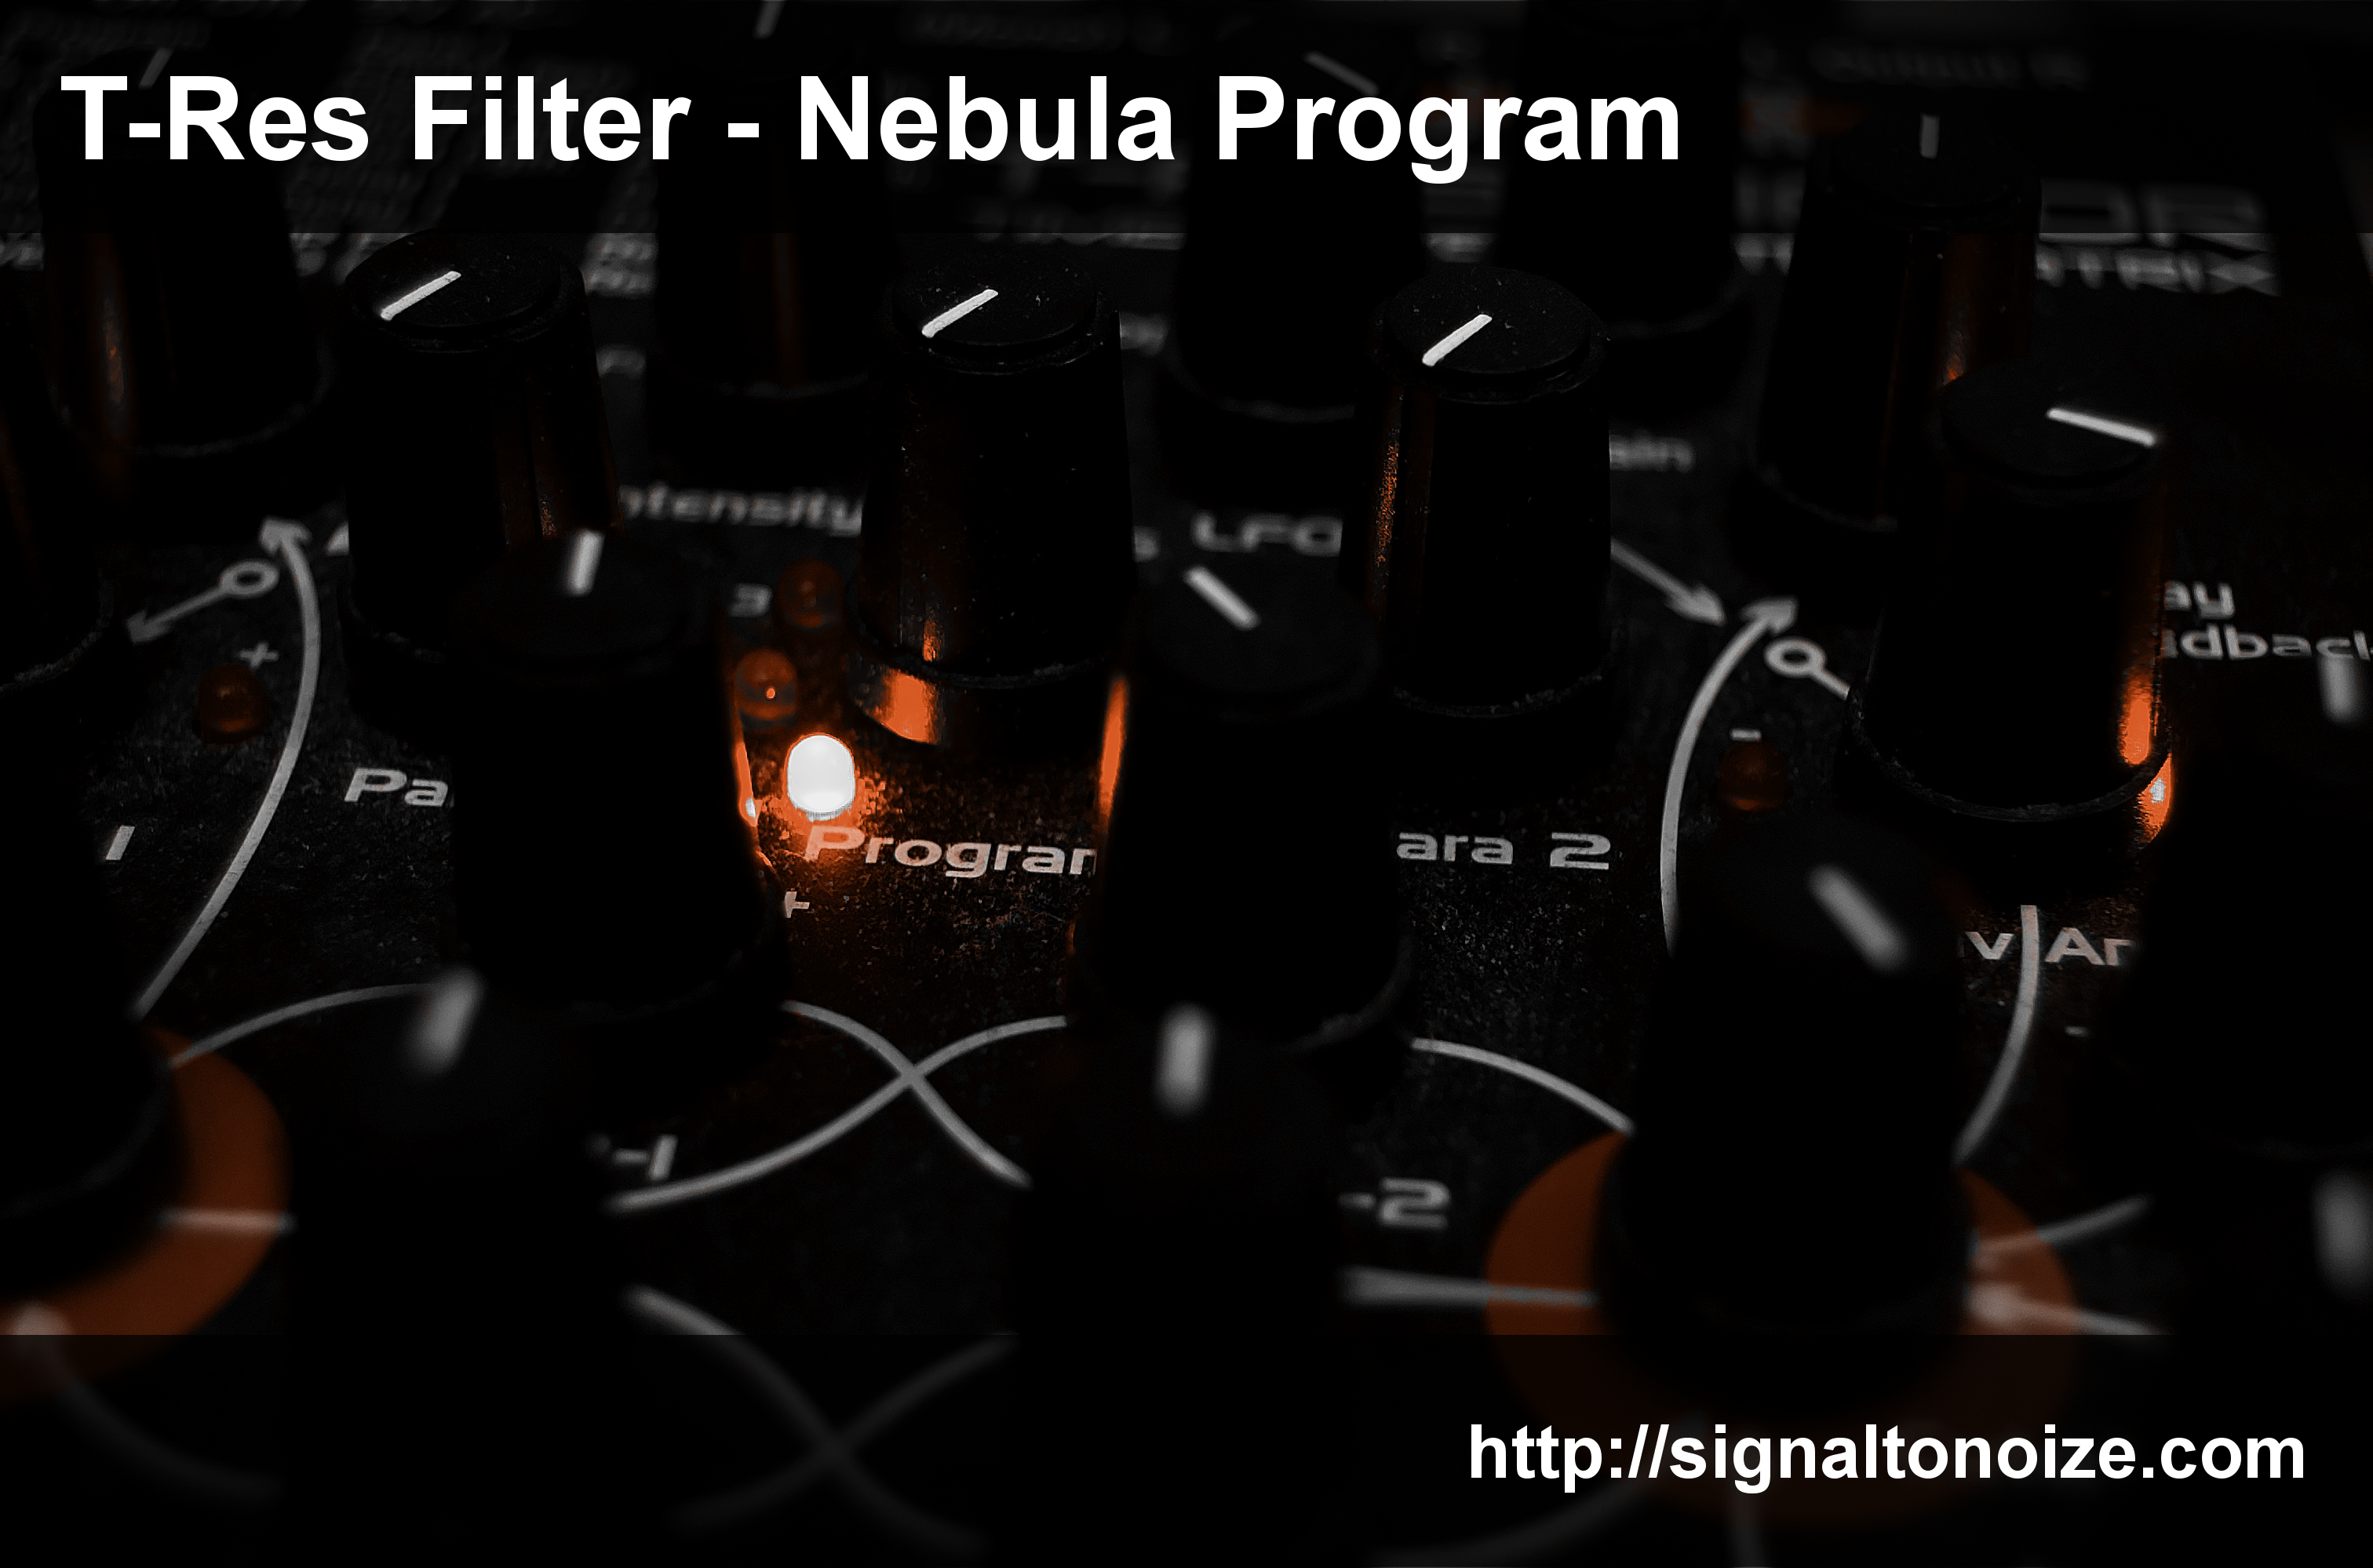 T-Res Filter – Nebula Program